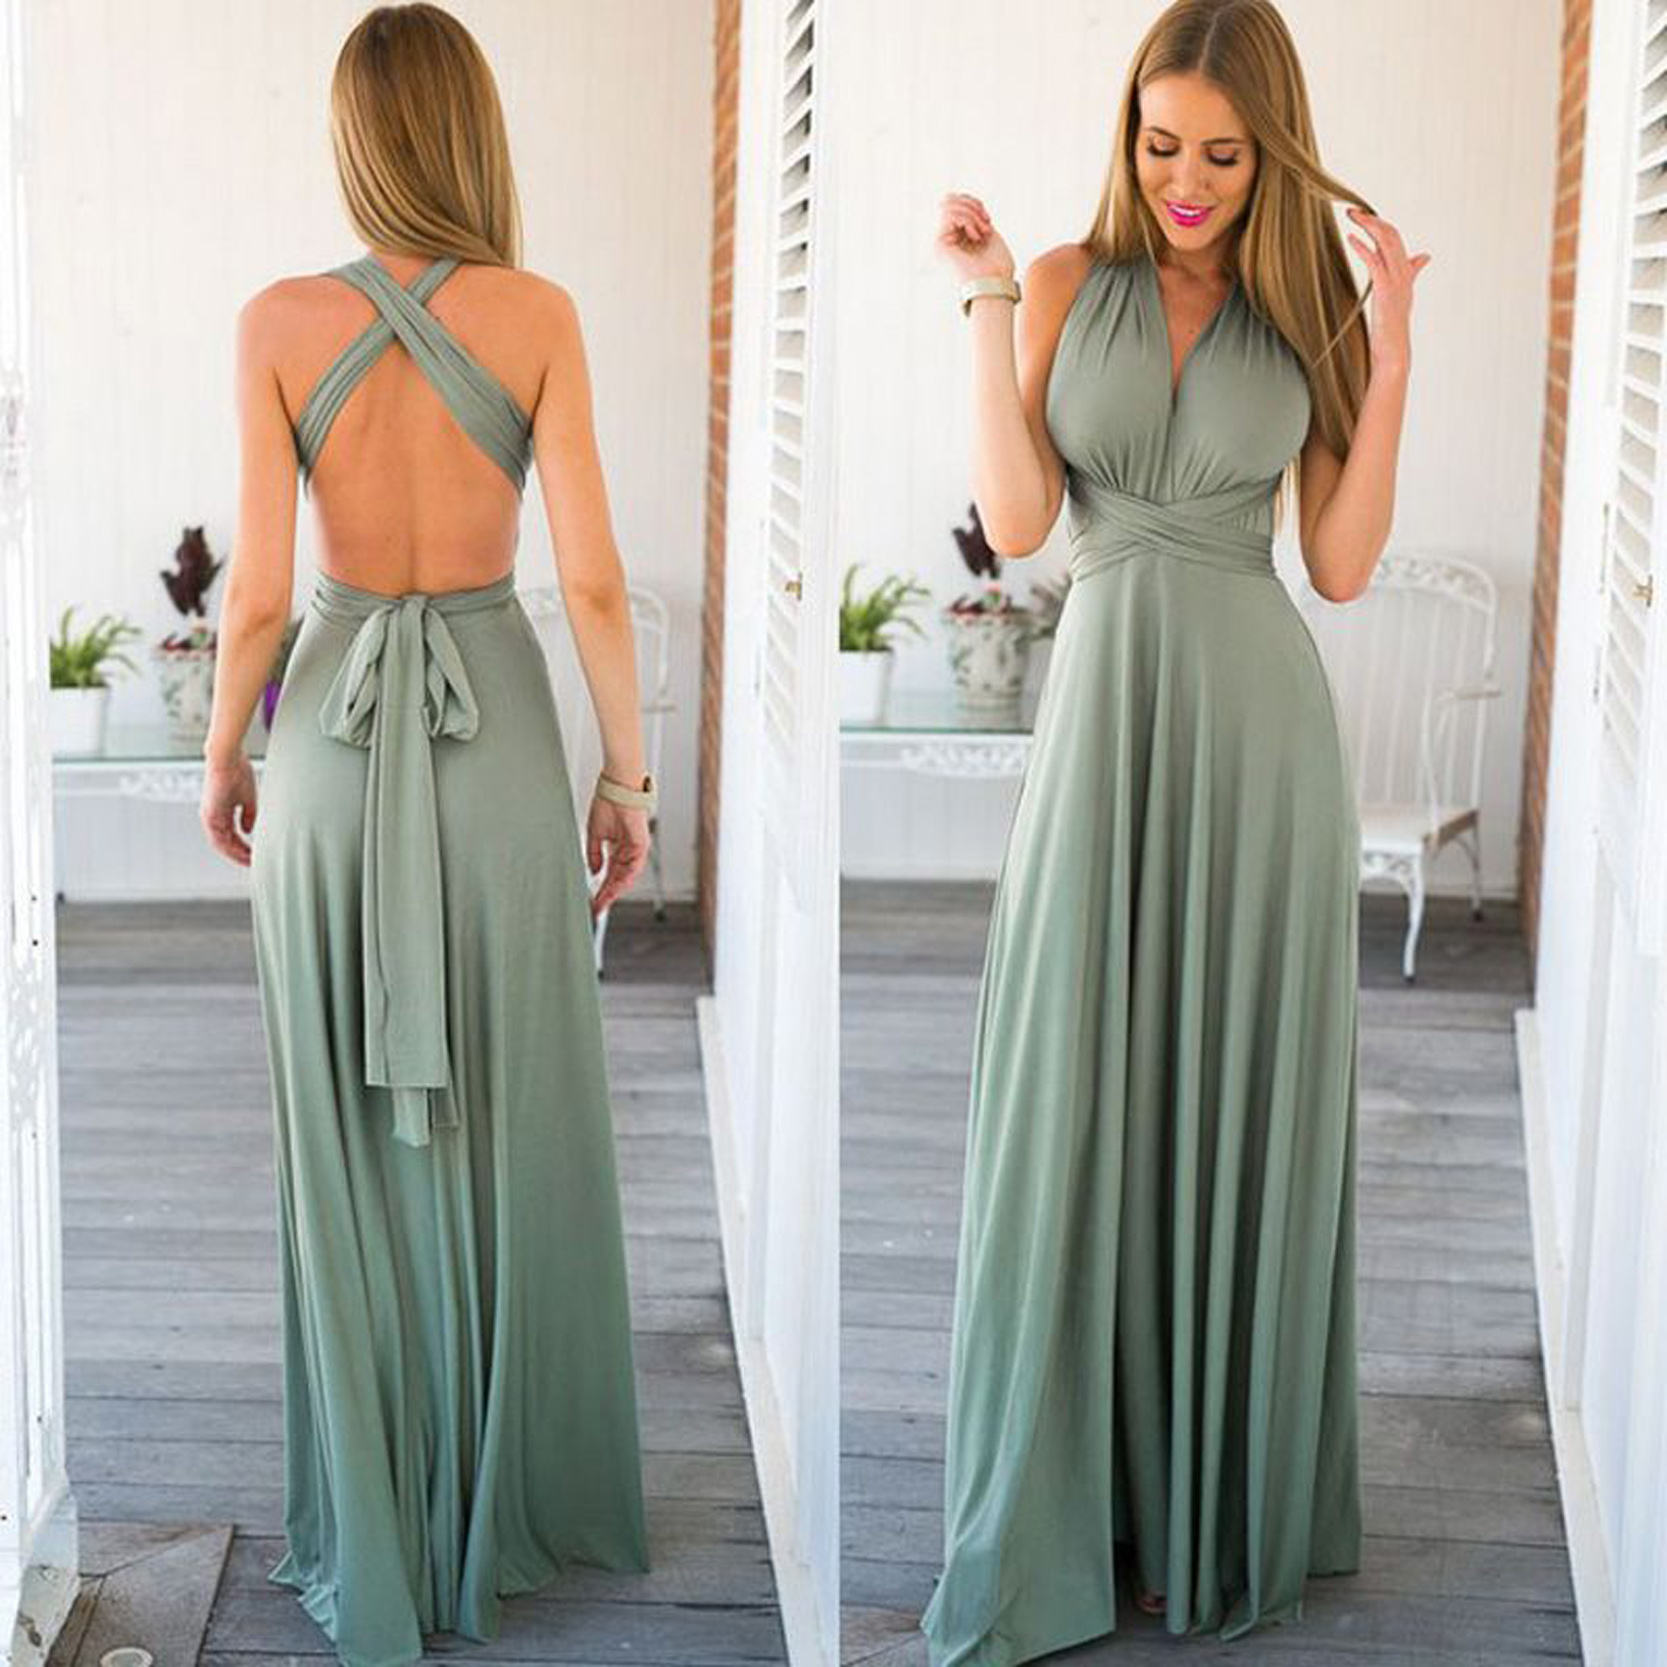 2020 New Designed Sleeveless Deep-v Neck Sexy Womens Party Evening Weddings Long Bridesmaid Dresses